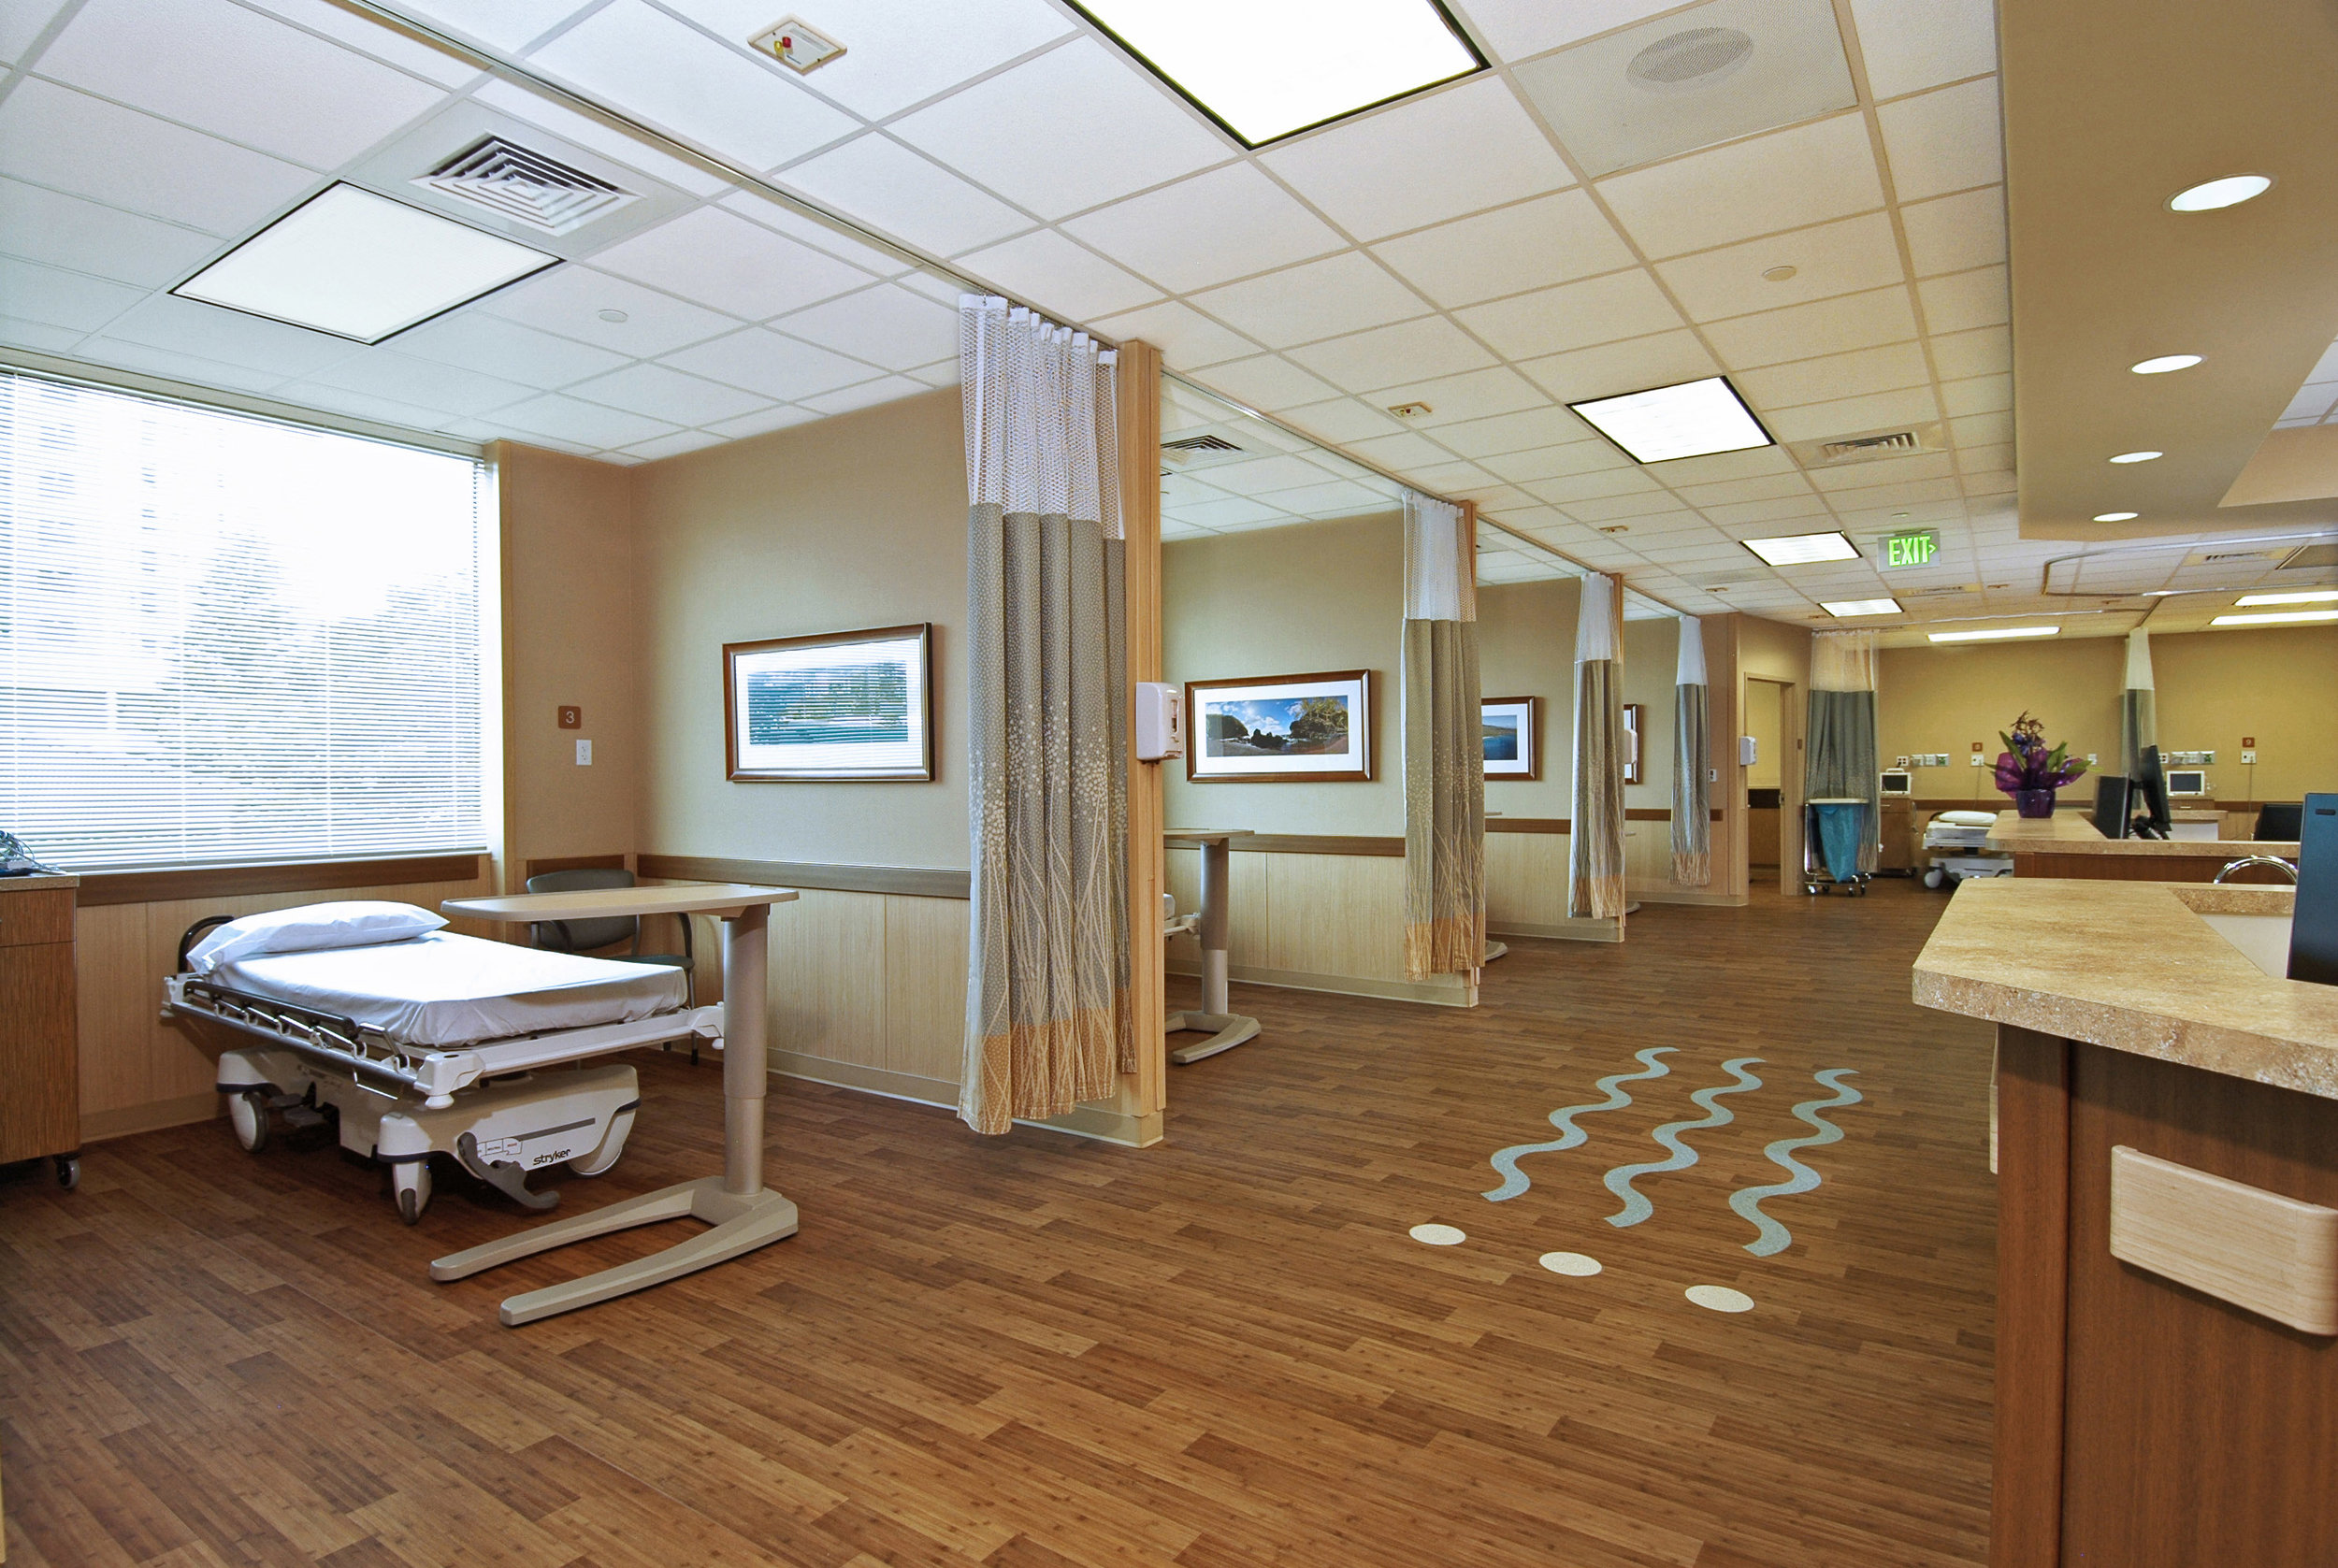 05 Recovery Rooms.jpg